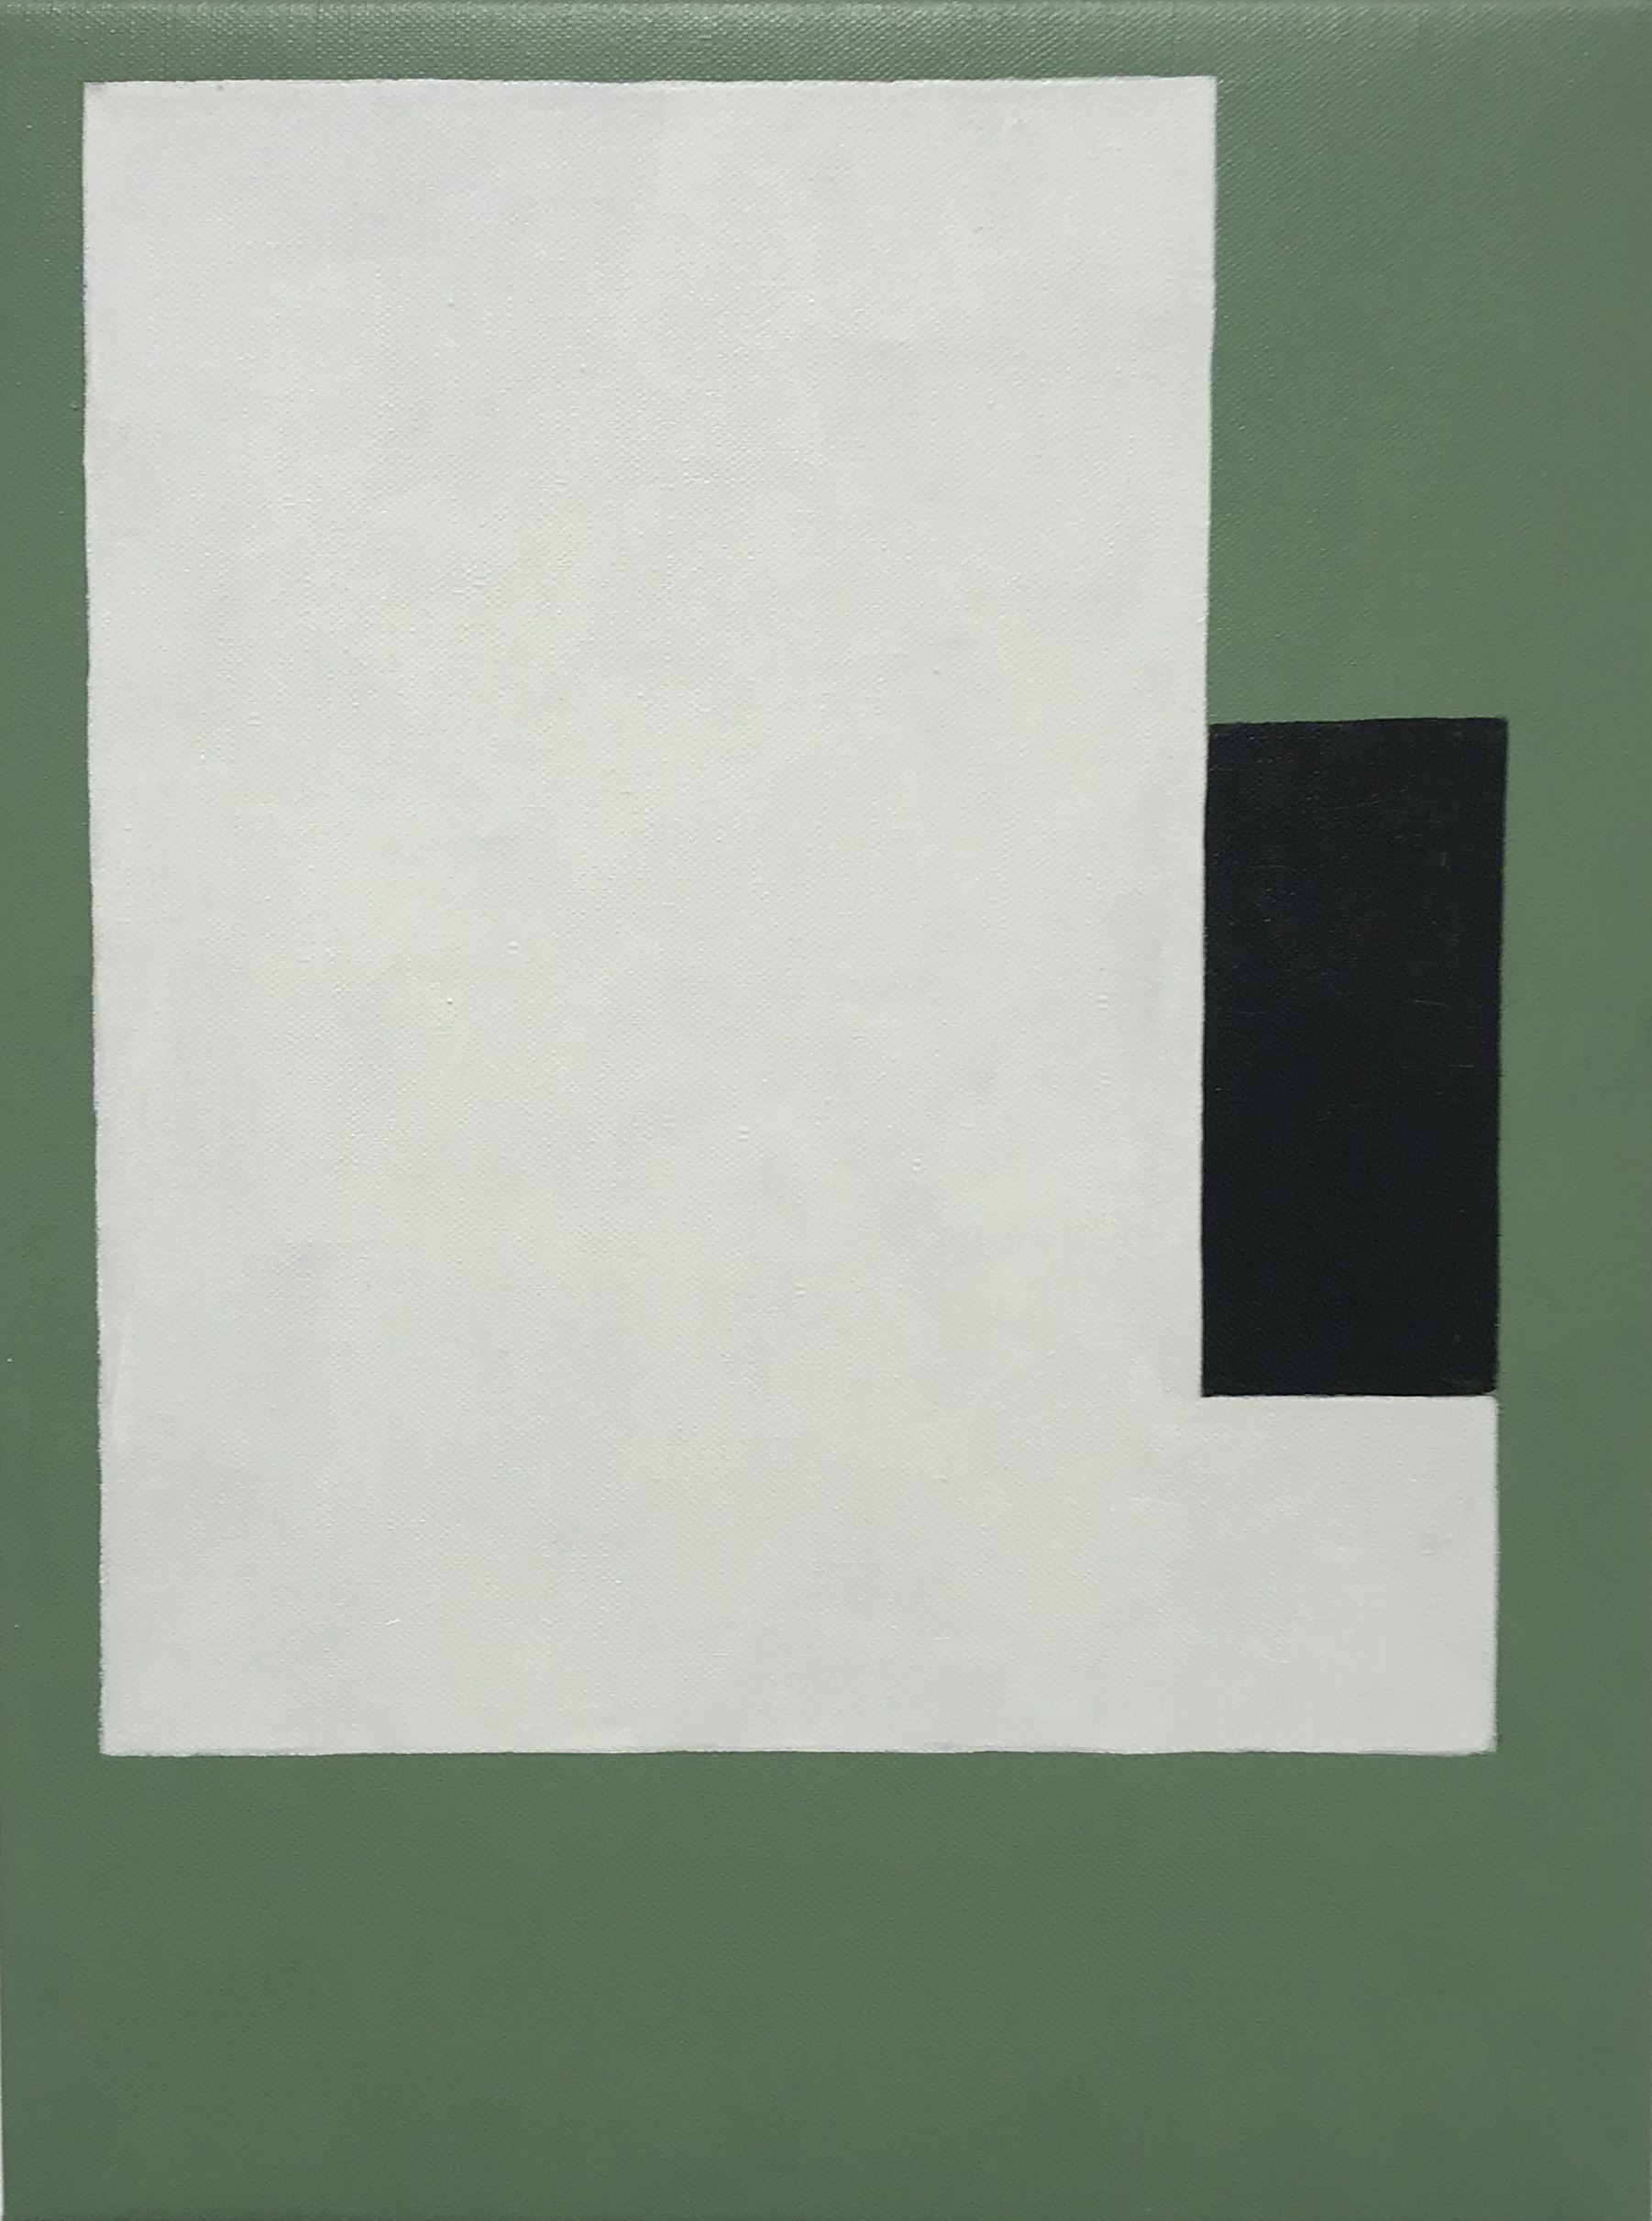 untitled  (LK18.017), 2018 acrylic on canvas 15 3/4 x 12 inches